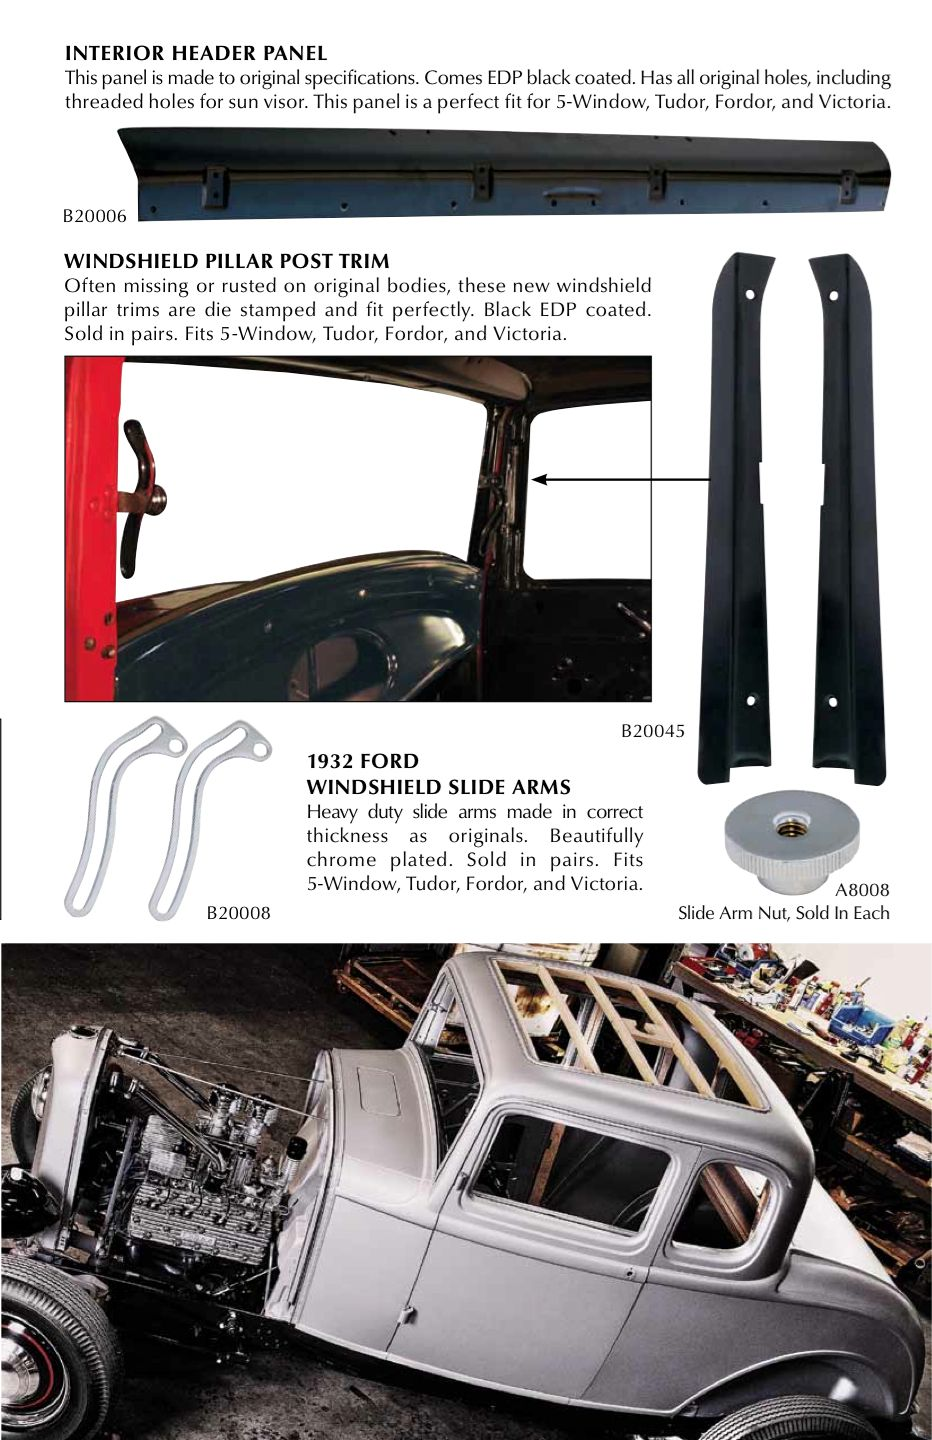 32 Ford 5 Window Coupe Interior Header Panel And Windshield Pillar Post Trim And Slide Arms By United Pacific 932 1440 Pillar And Post 32 Ford Windshield